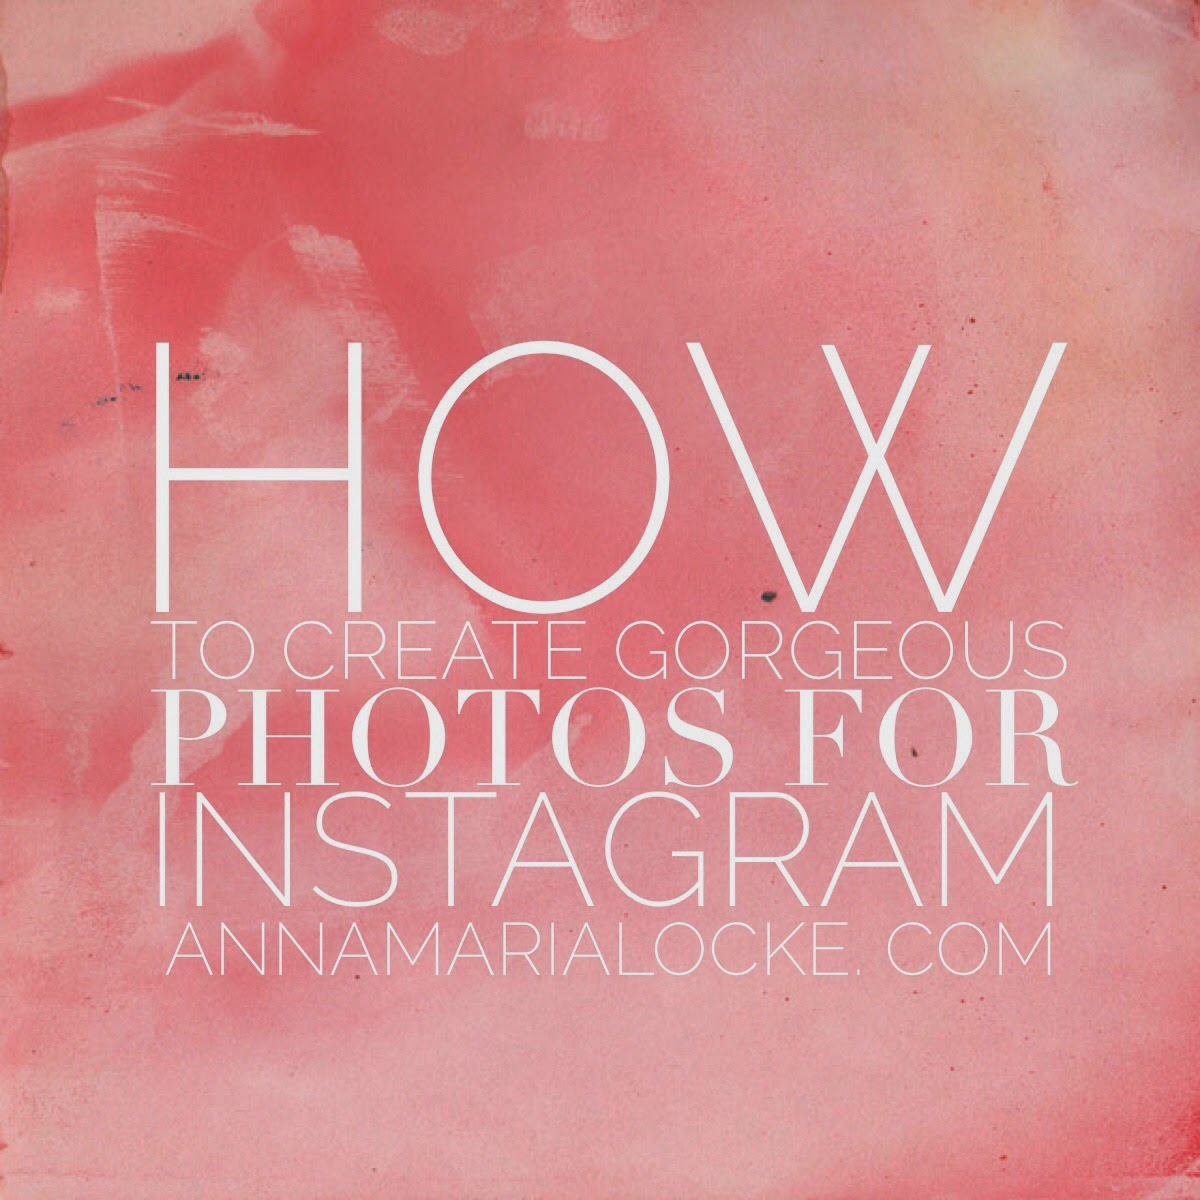 How to create gorgeous photos for Instagram